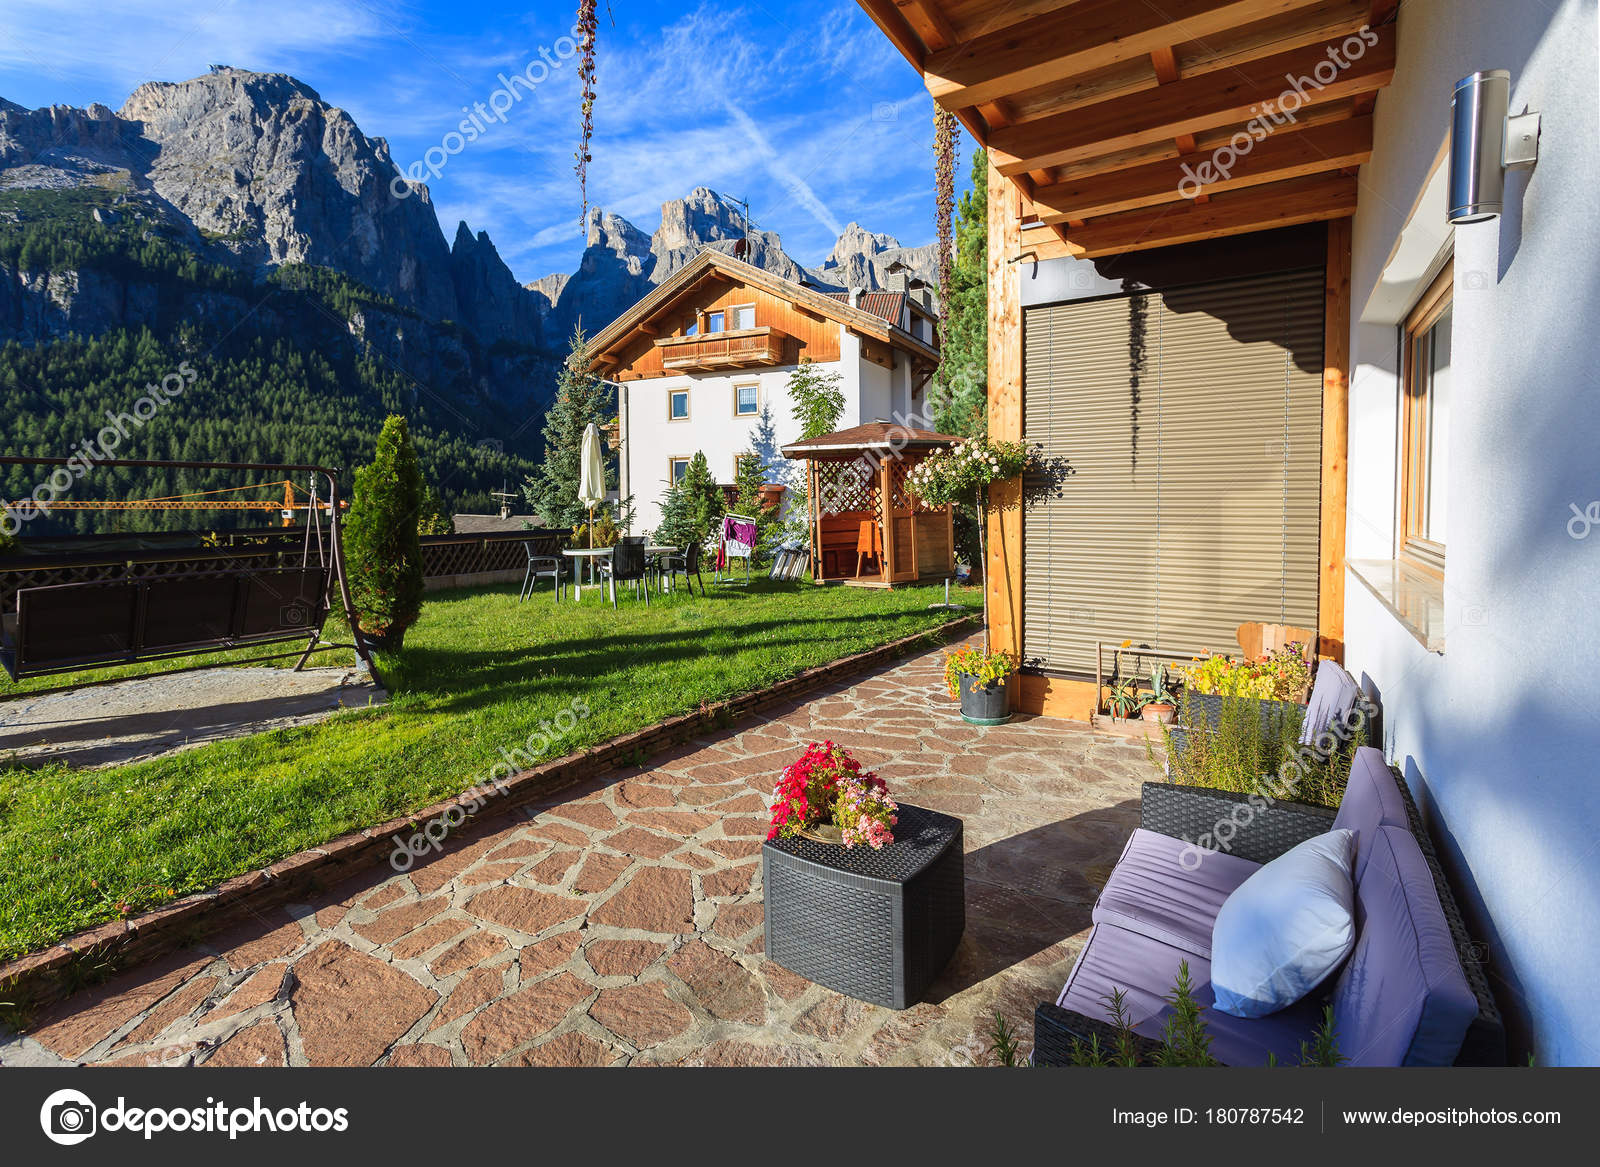 Colfosco Dolomites Italy Sep 2013 Couch Coffee Table Sunny Patio